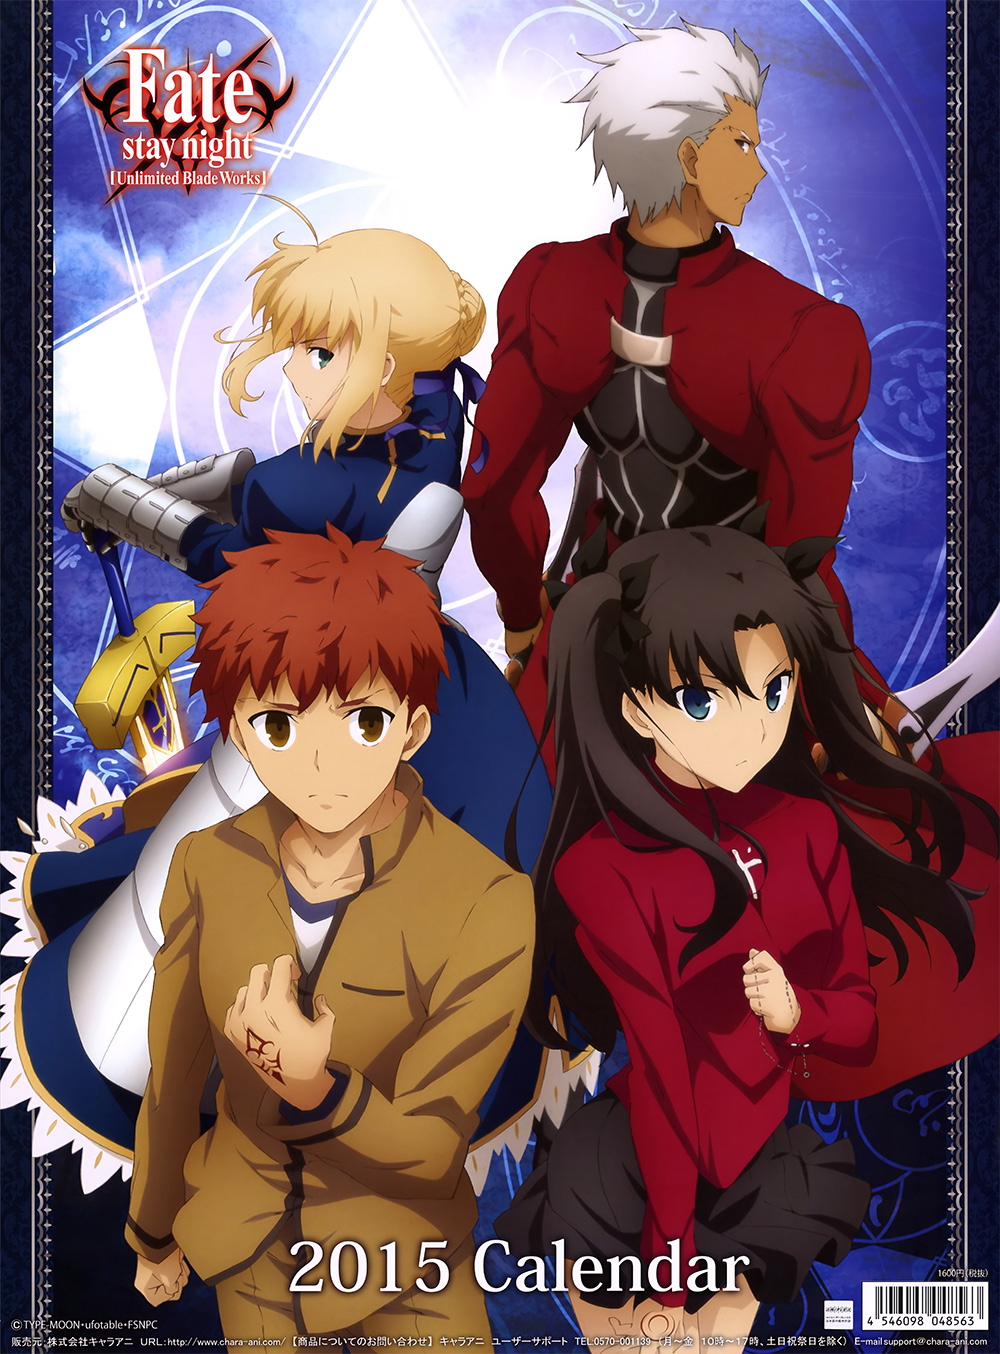 The-Fate-stay-night-Unlimited-Blade-Works-2015-Anime-Calendar-is-Lacklustre